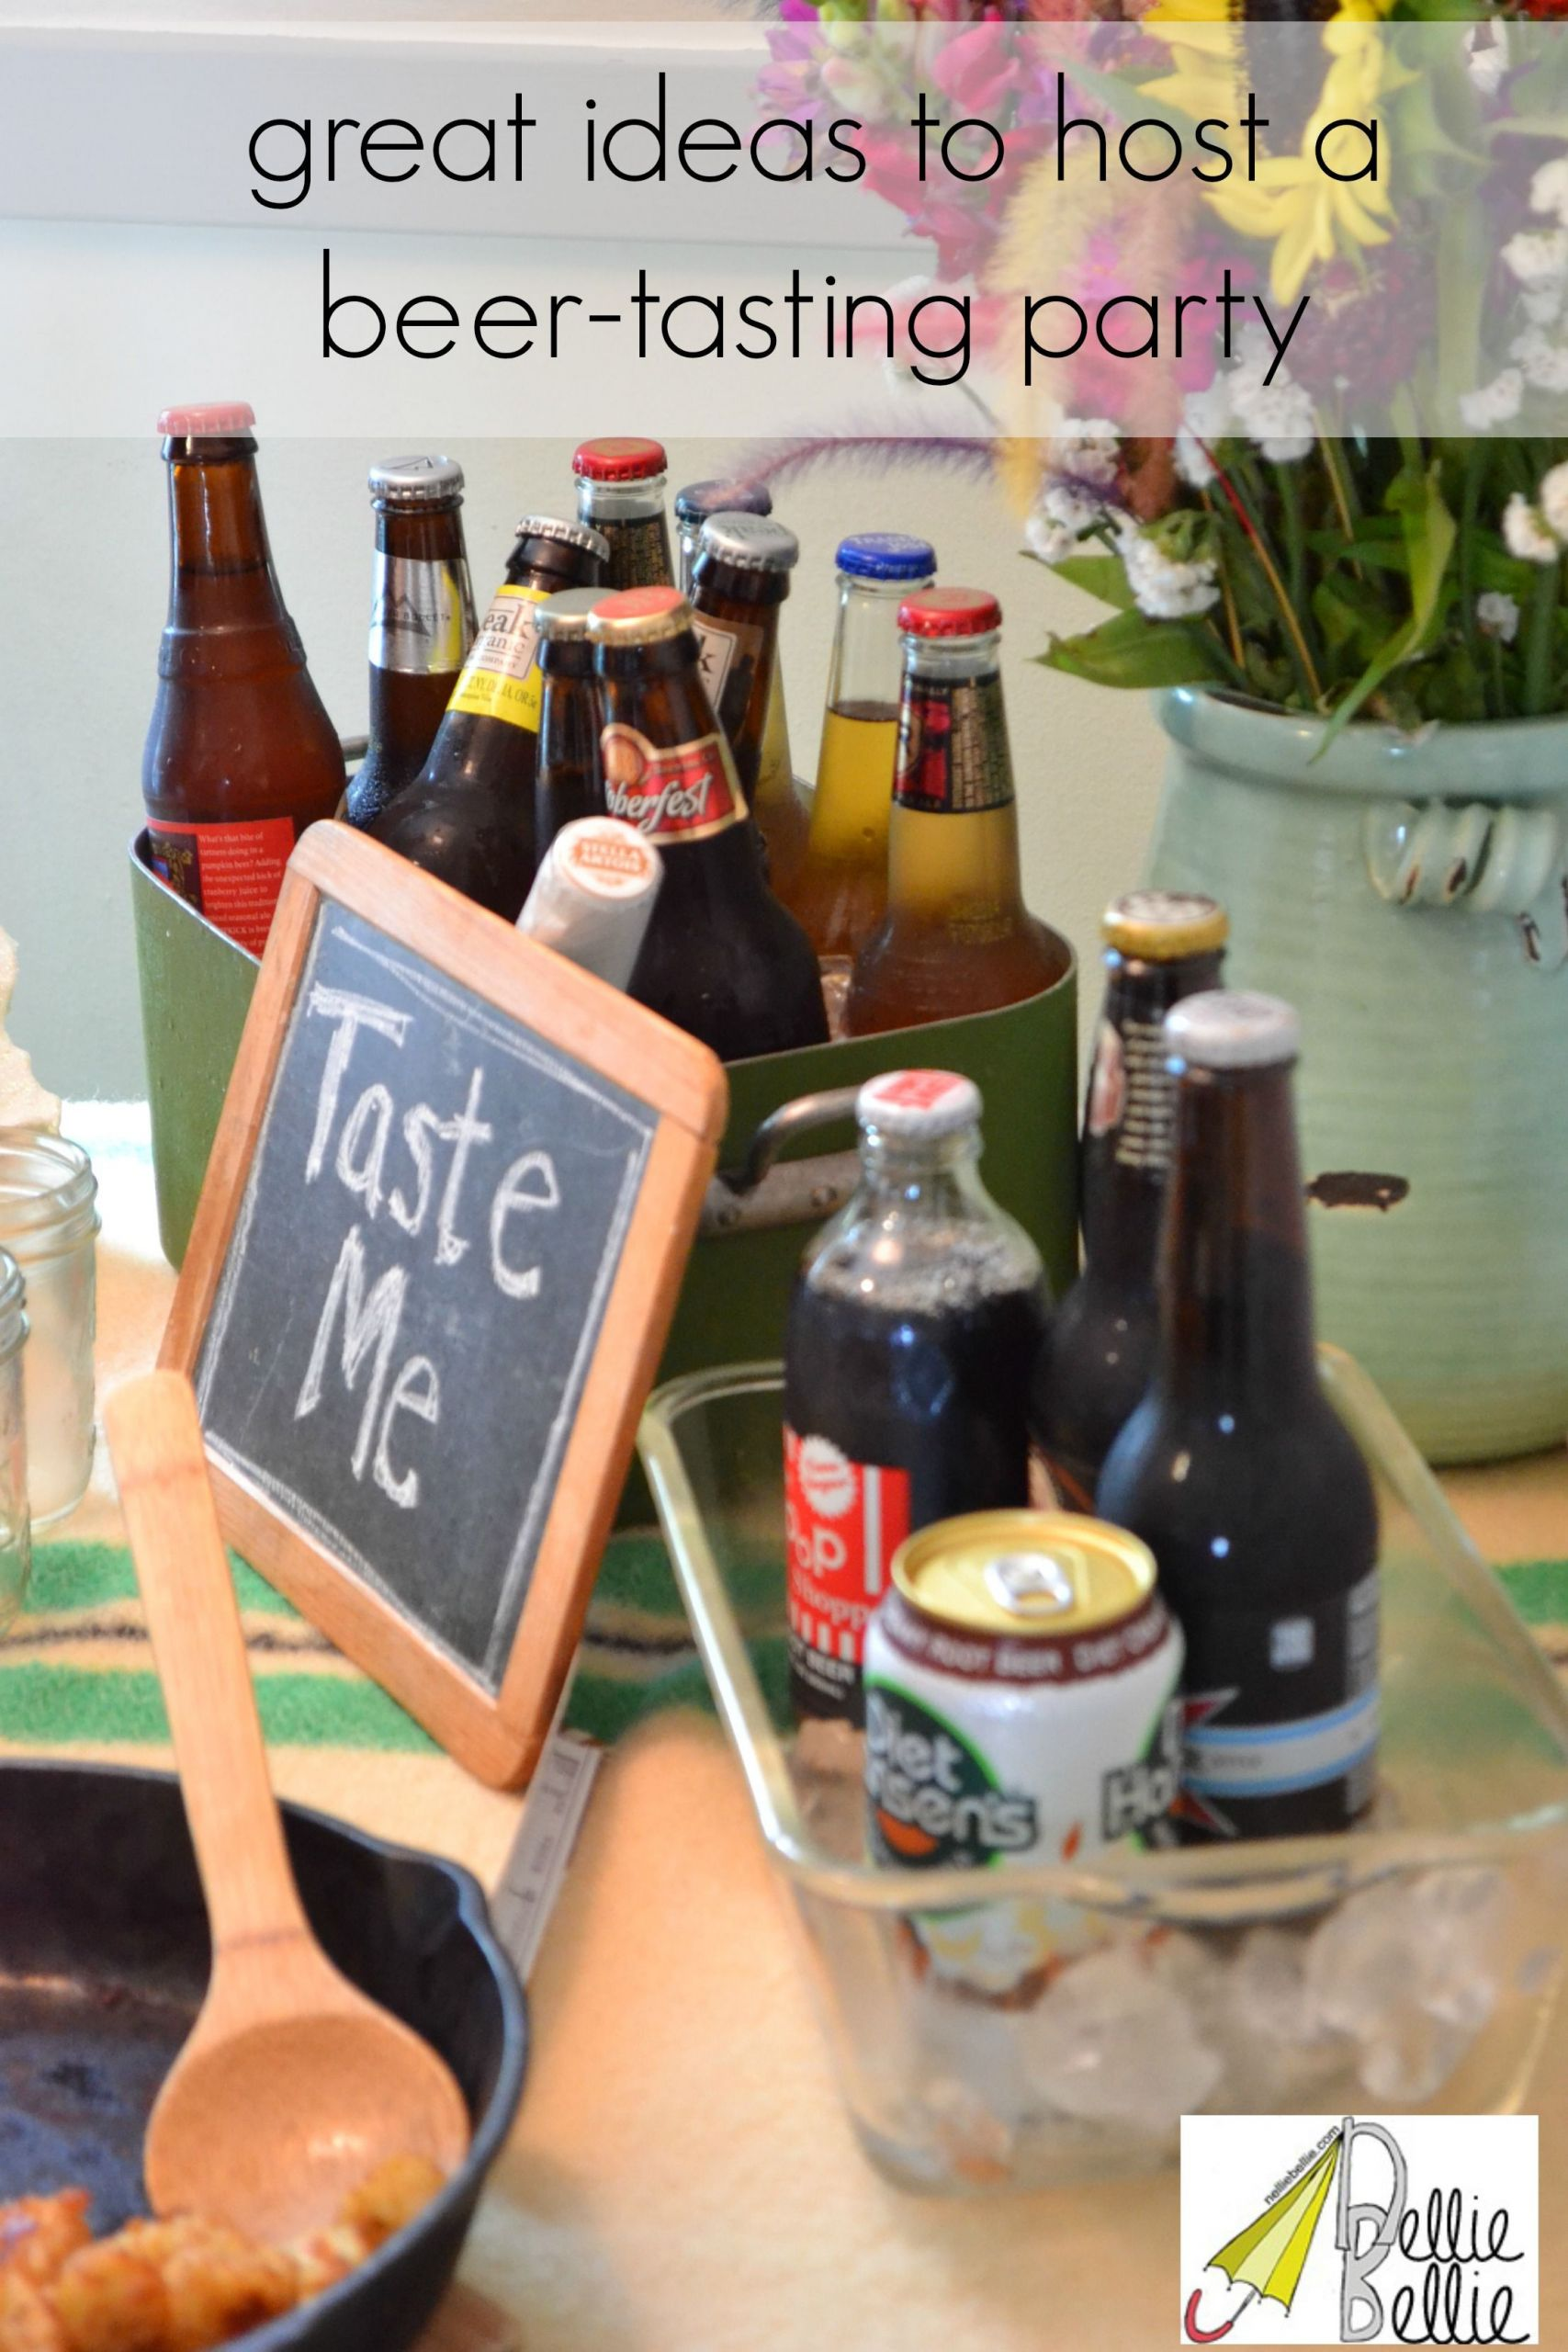 Cheap Summer Party Ideas  Great ideas for a beer tasting party A fun inexpensive